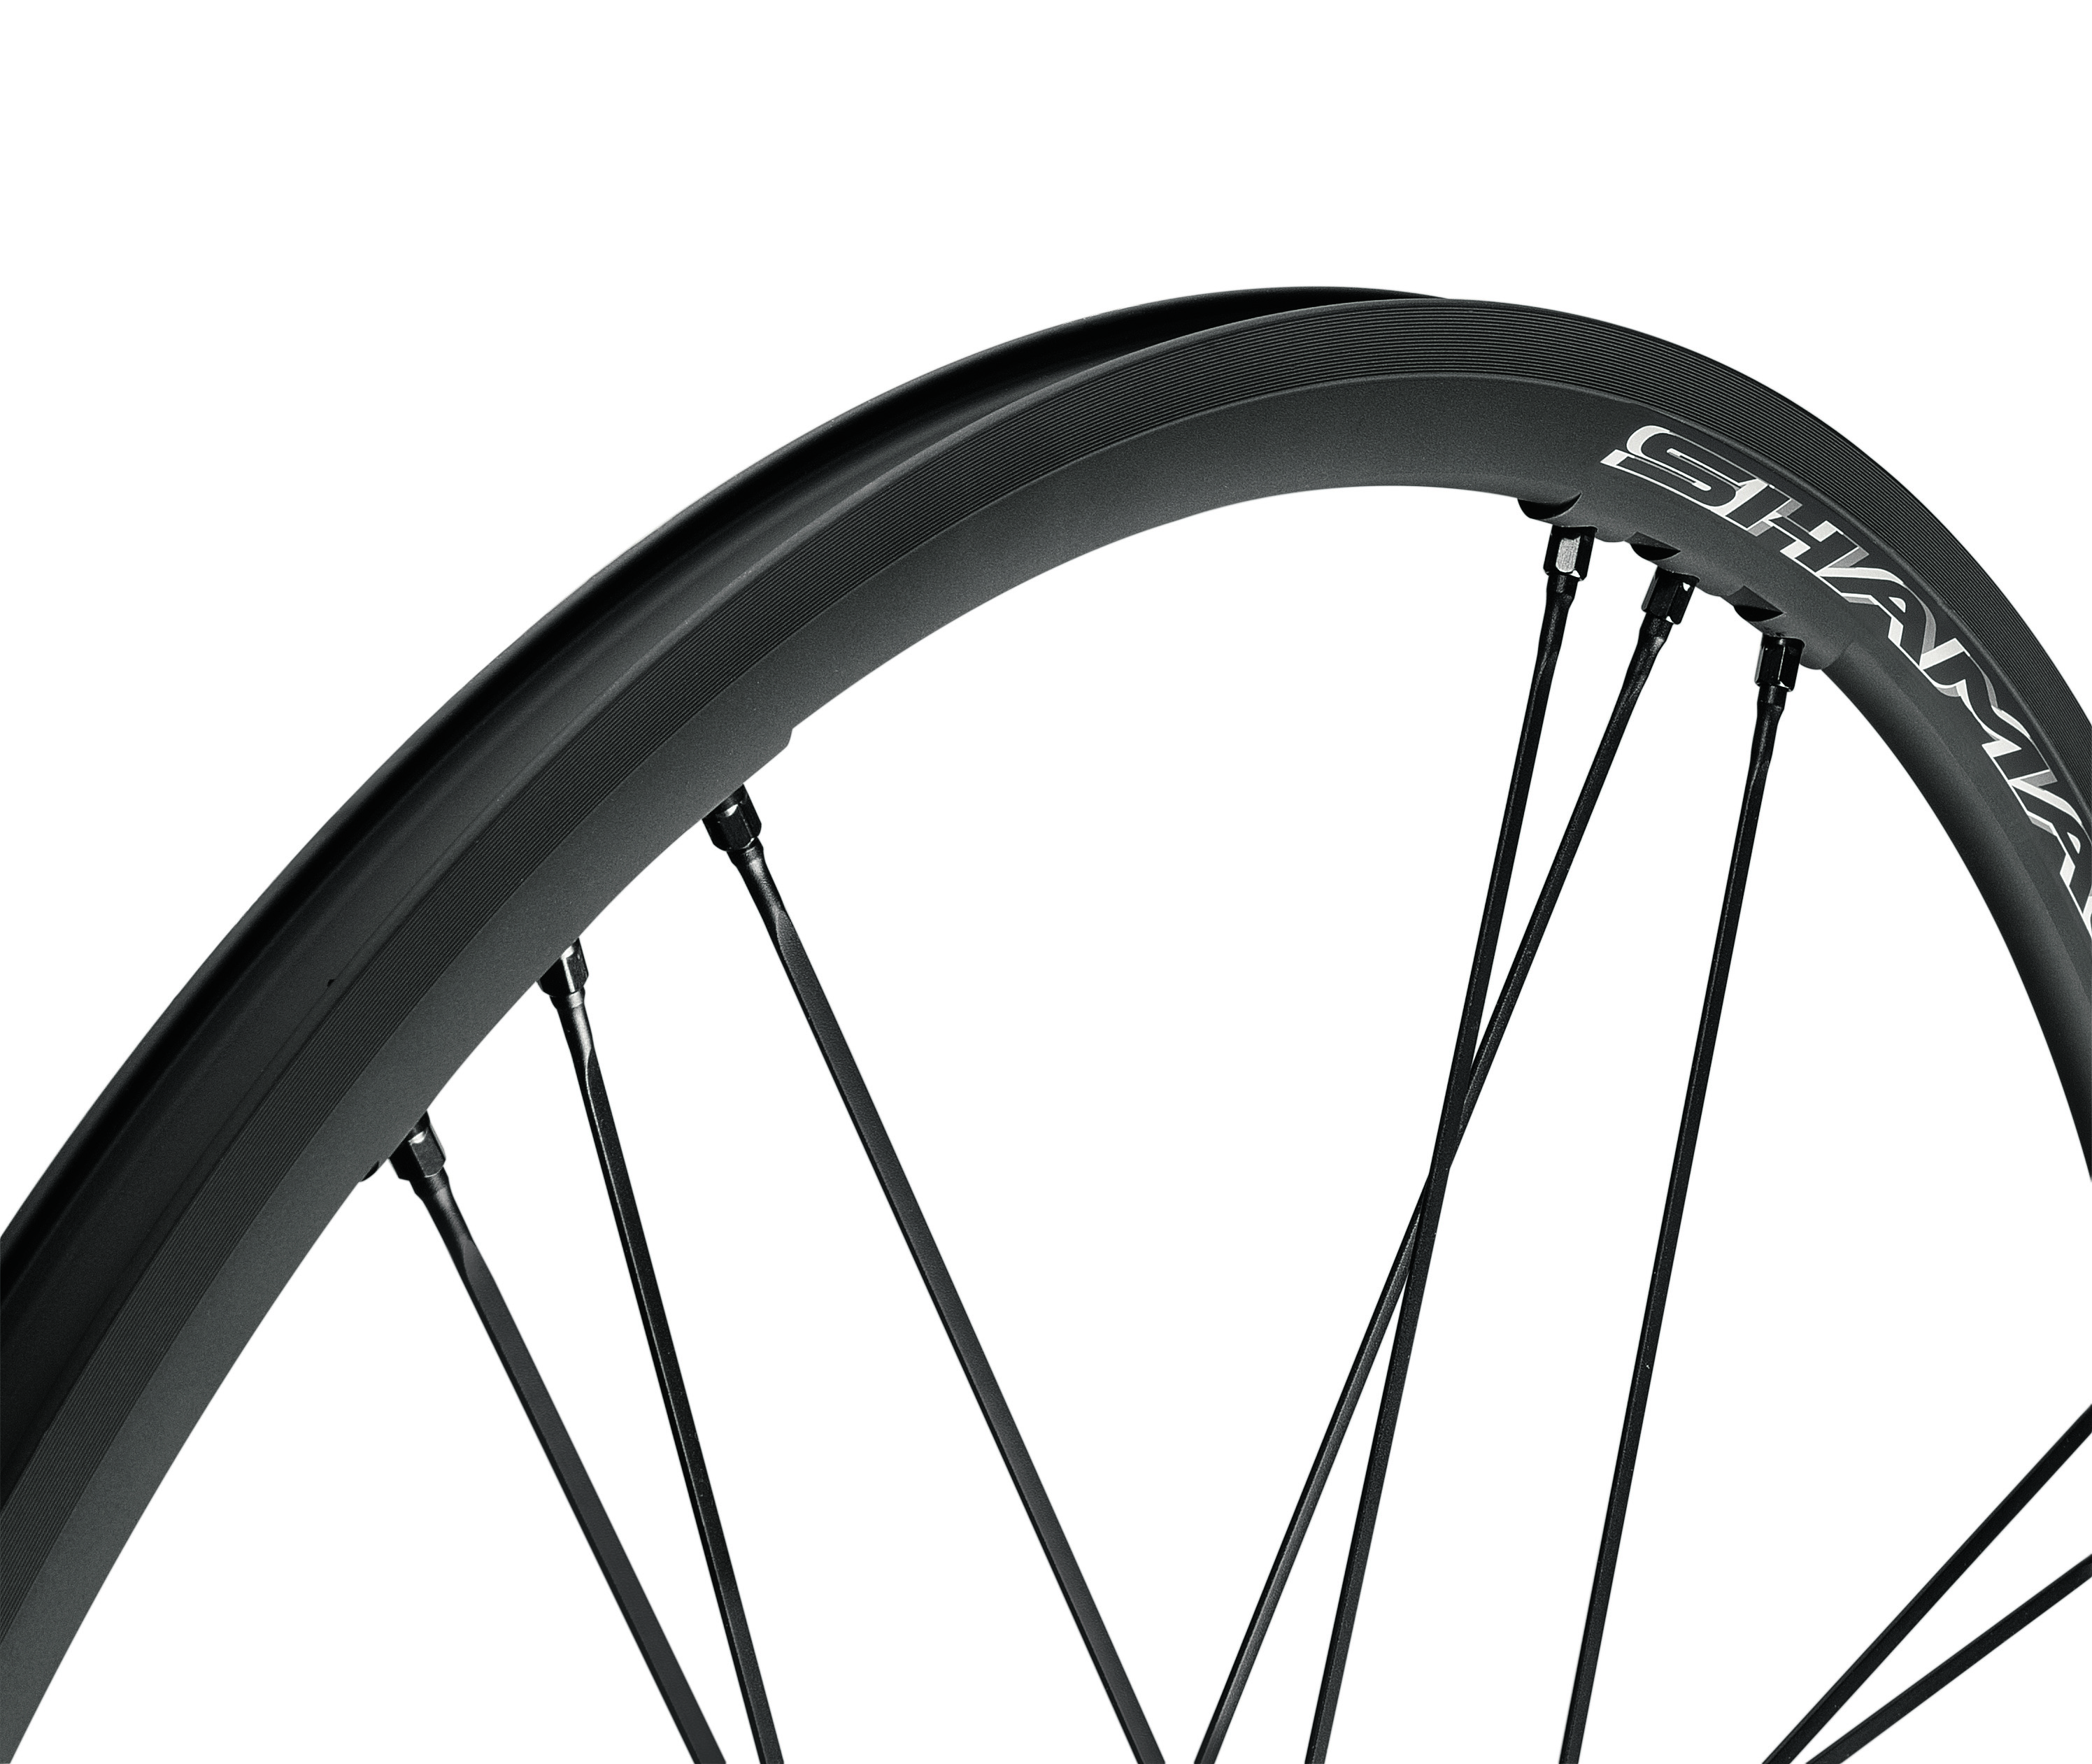 Nuove ruote Campagnolo Shamal Mille C17